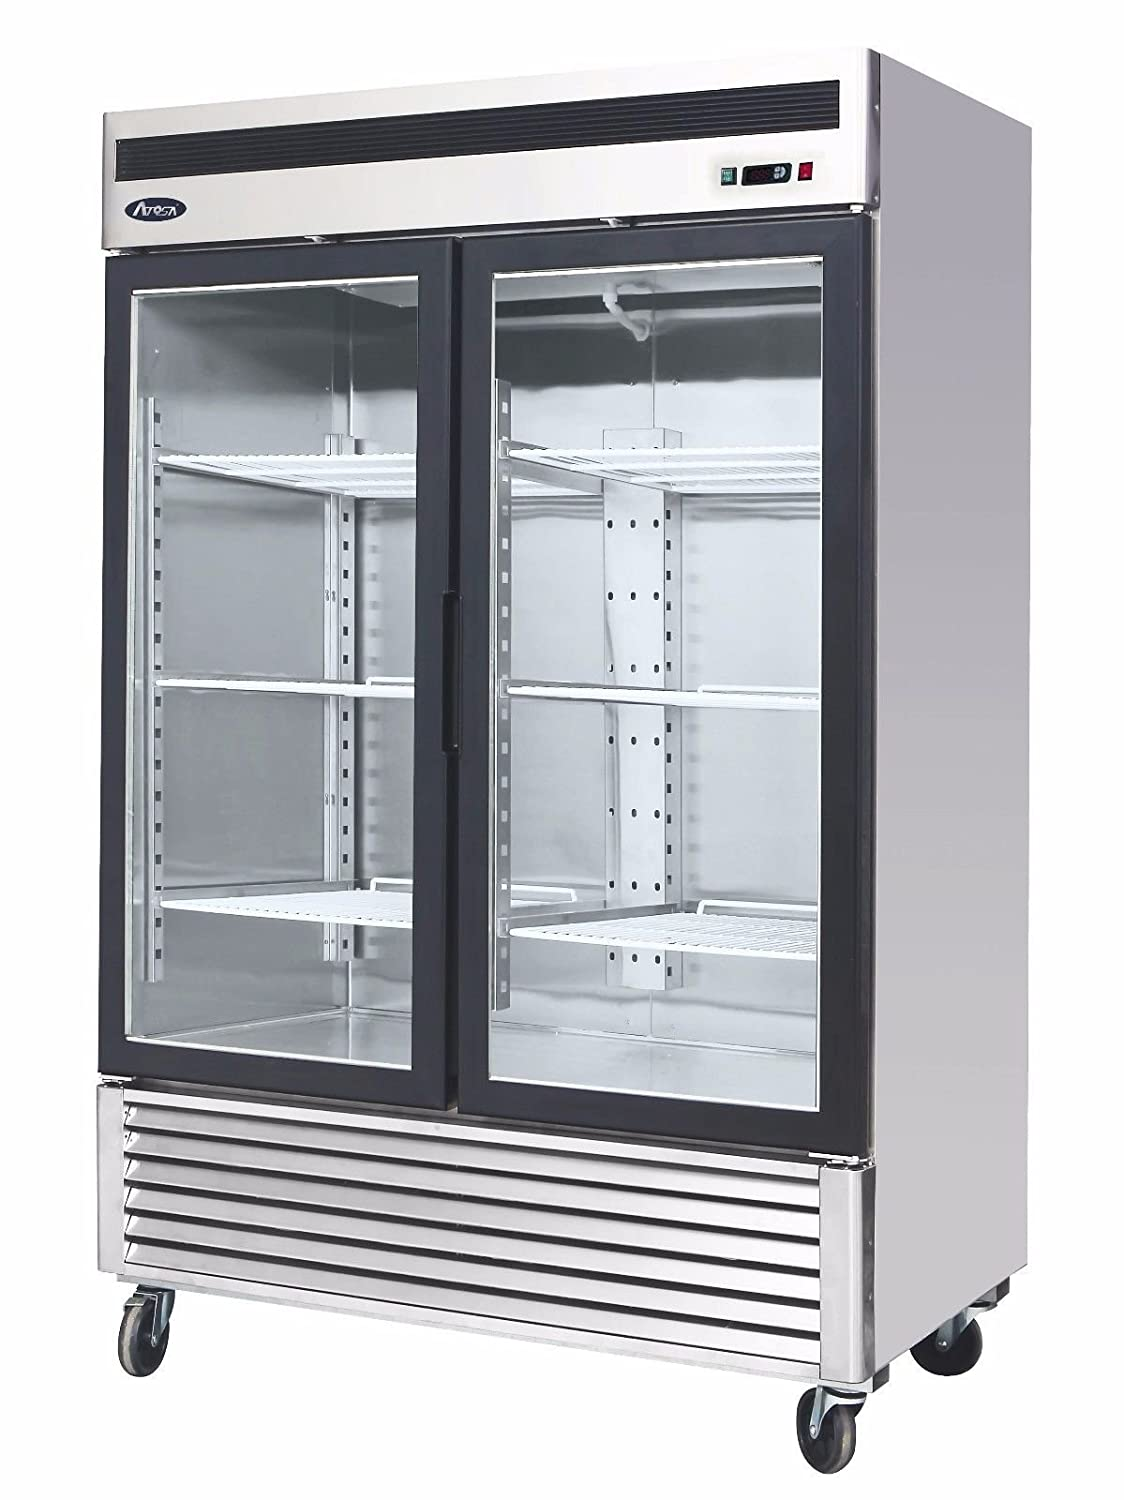 Amazon.com: BRAND NEW COMMERCIAL 2 GLASS DOOR REFRIGERATOR ...